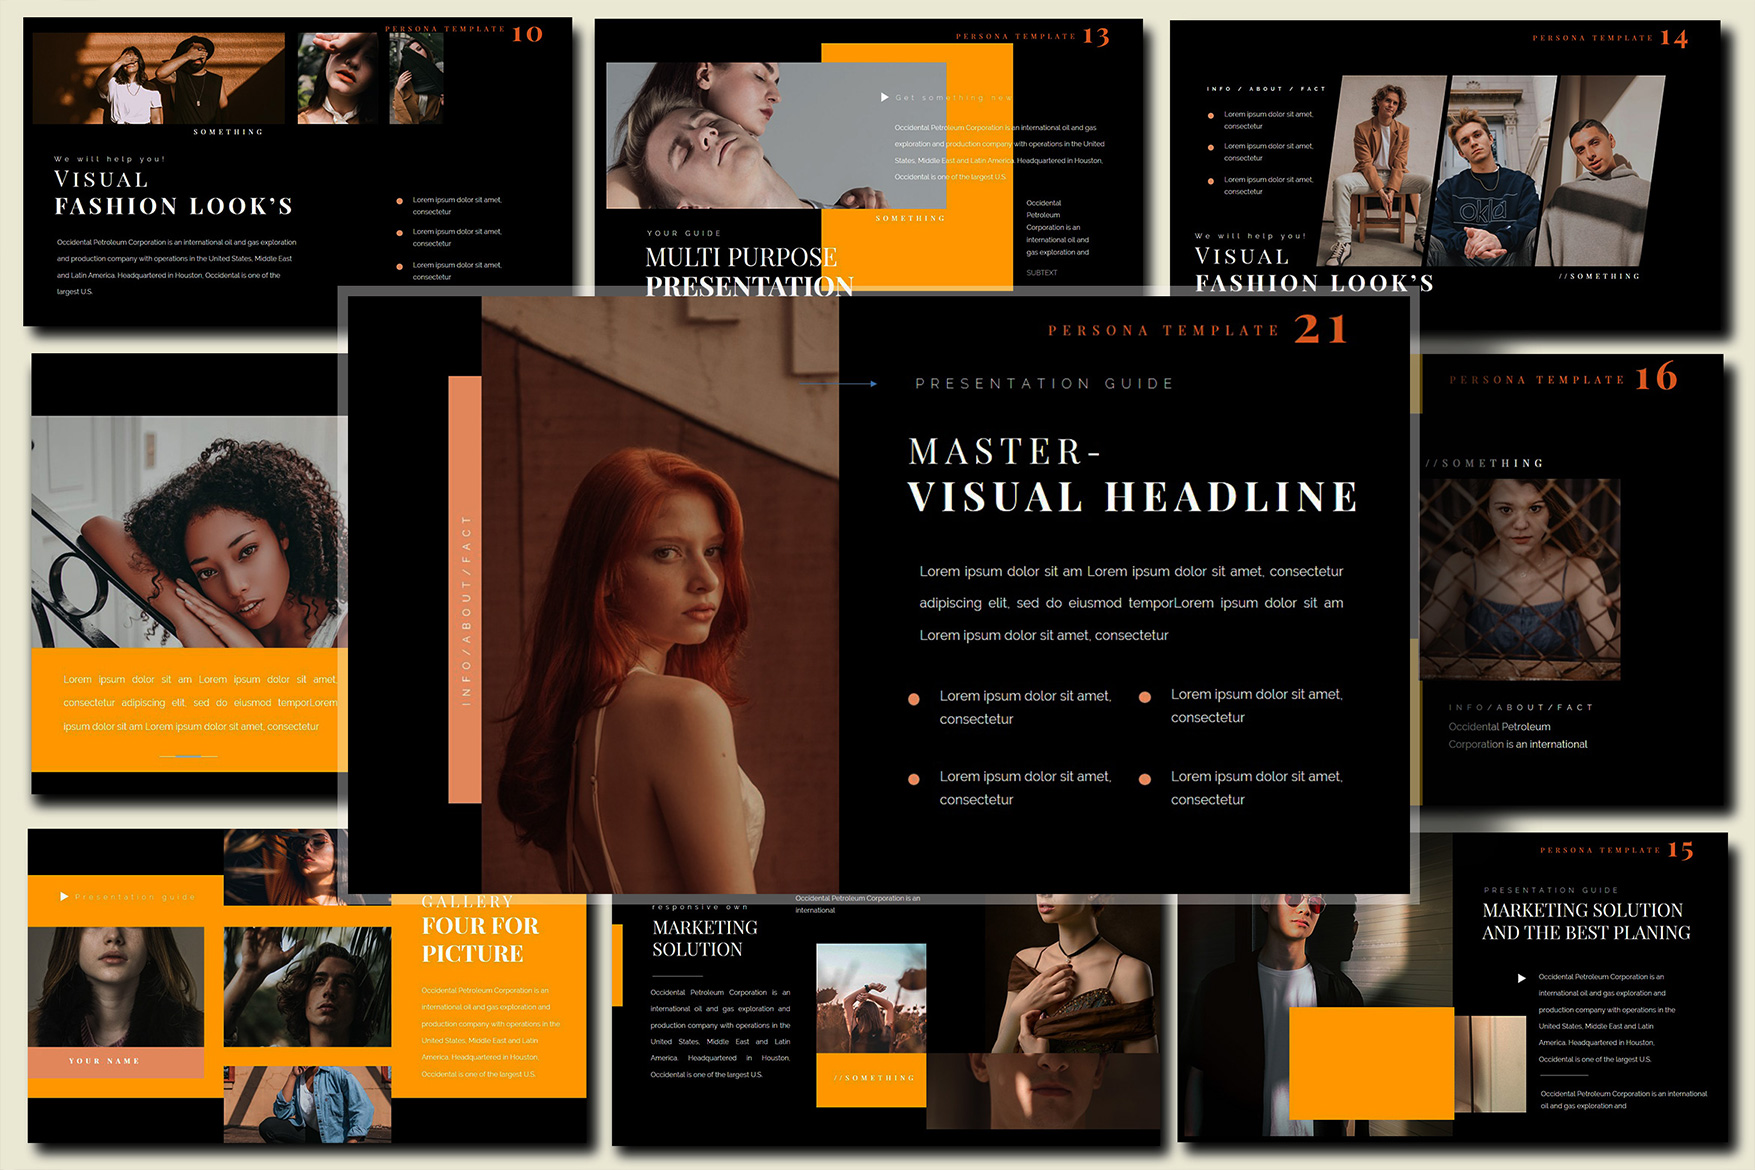 Pesona Dark Lookbook Keynote Template example image 5